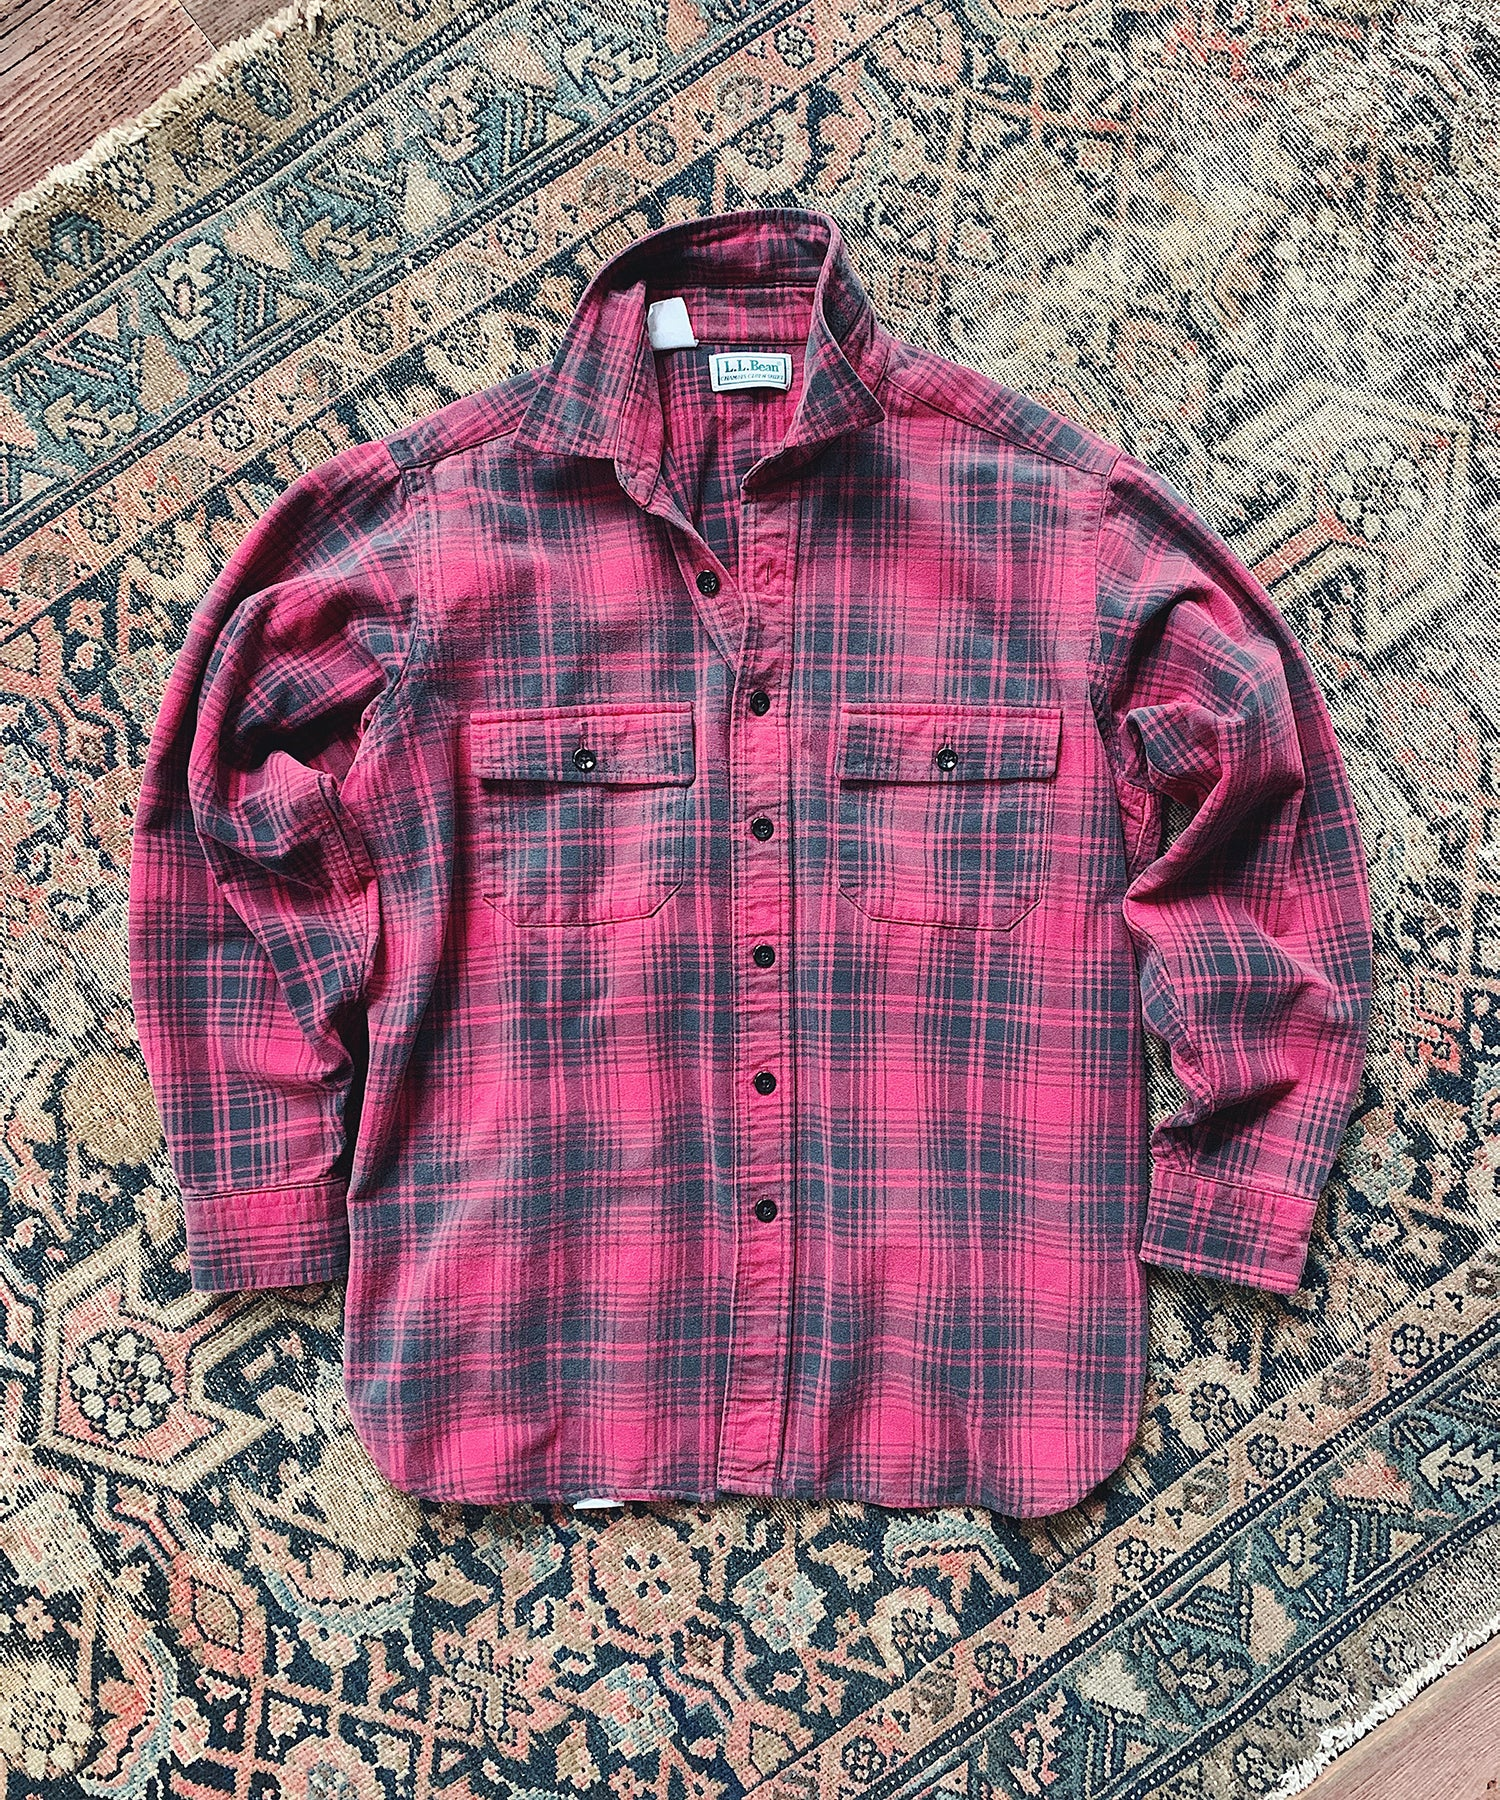 Item #6 -  Todd Snyder x Wooden Sleepers 1980's Chamois Shirt in Red/Black Plaid - SOLD OUT